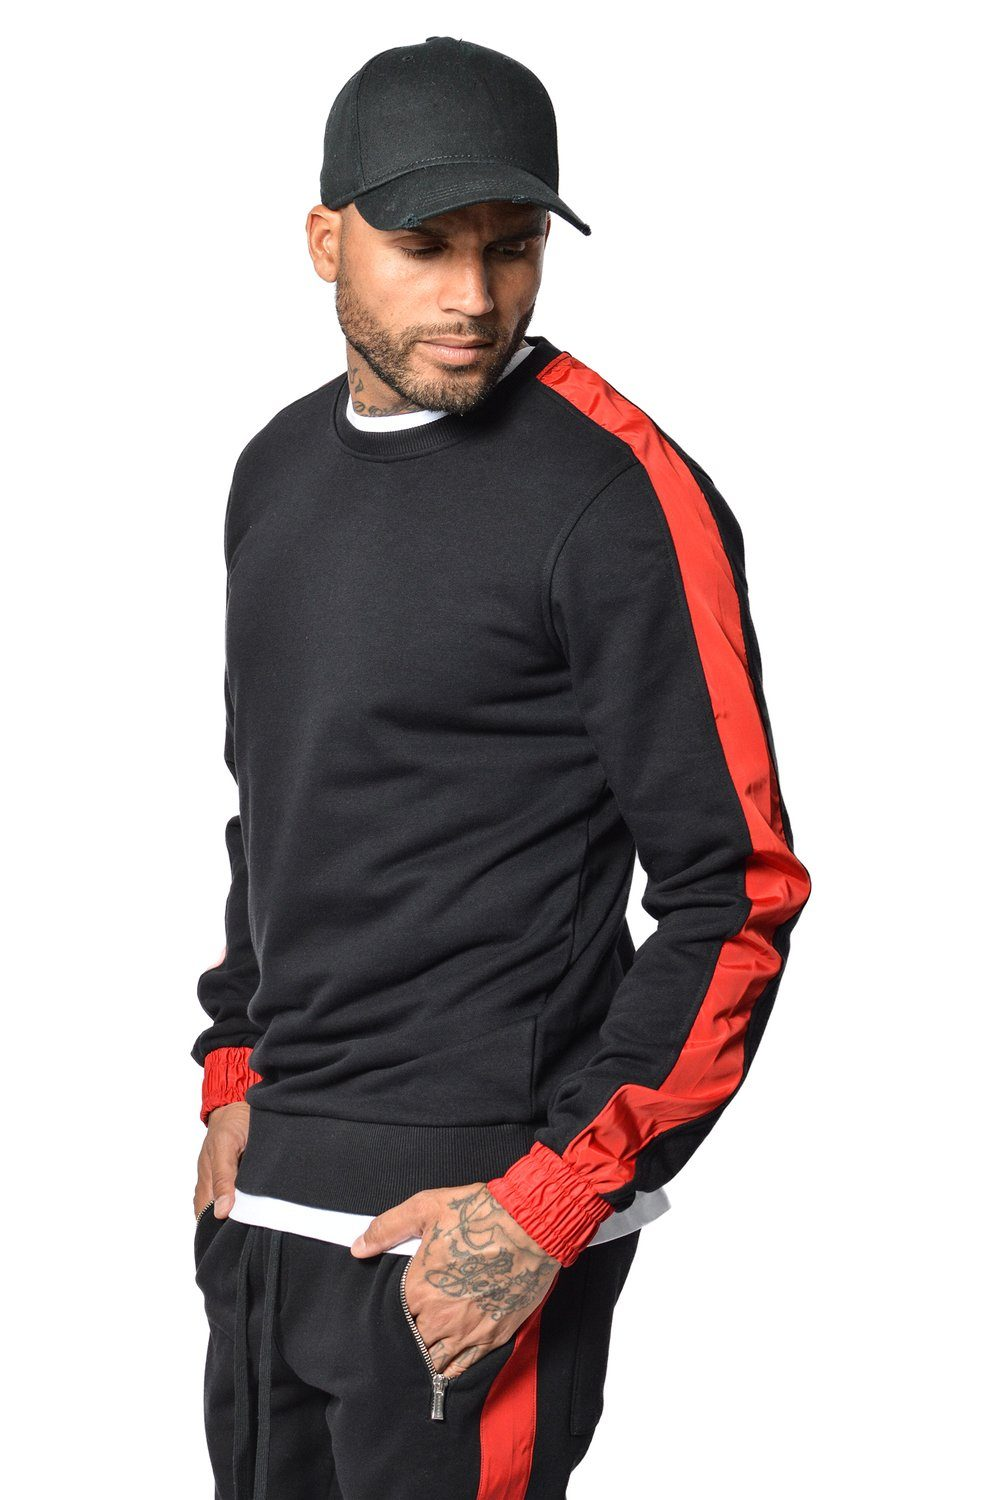 David Stripe Sweater Black - PEGADOR - Dominate the Hype